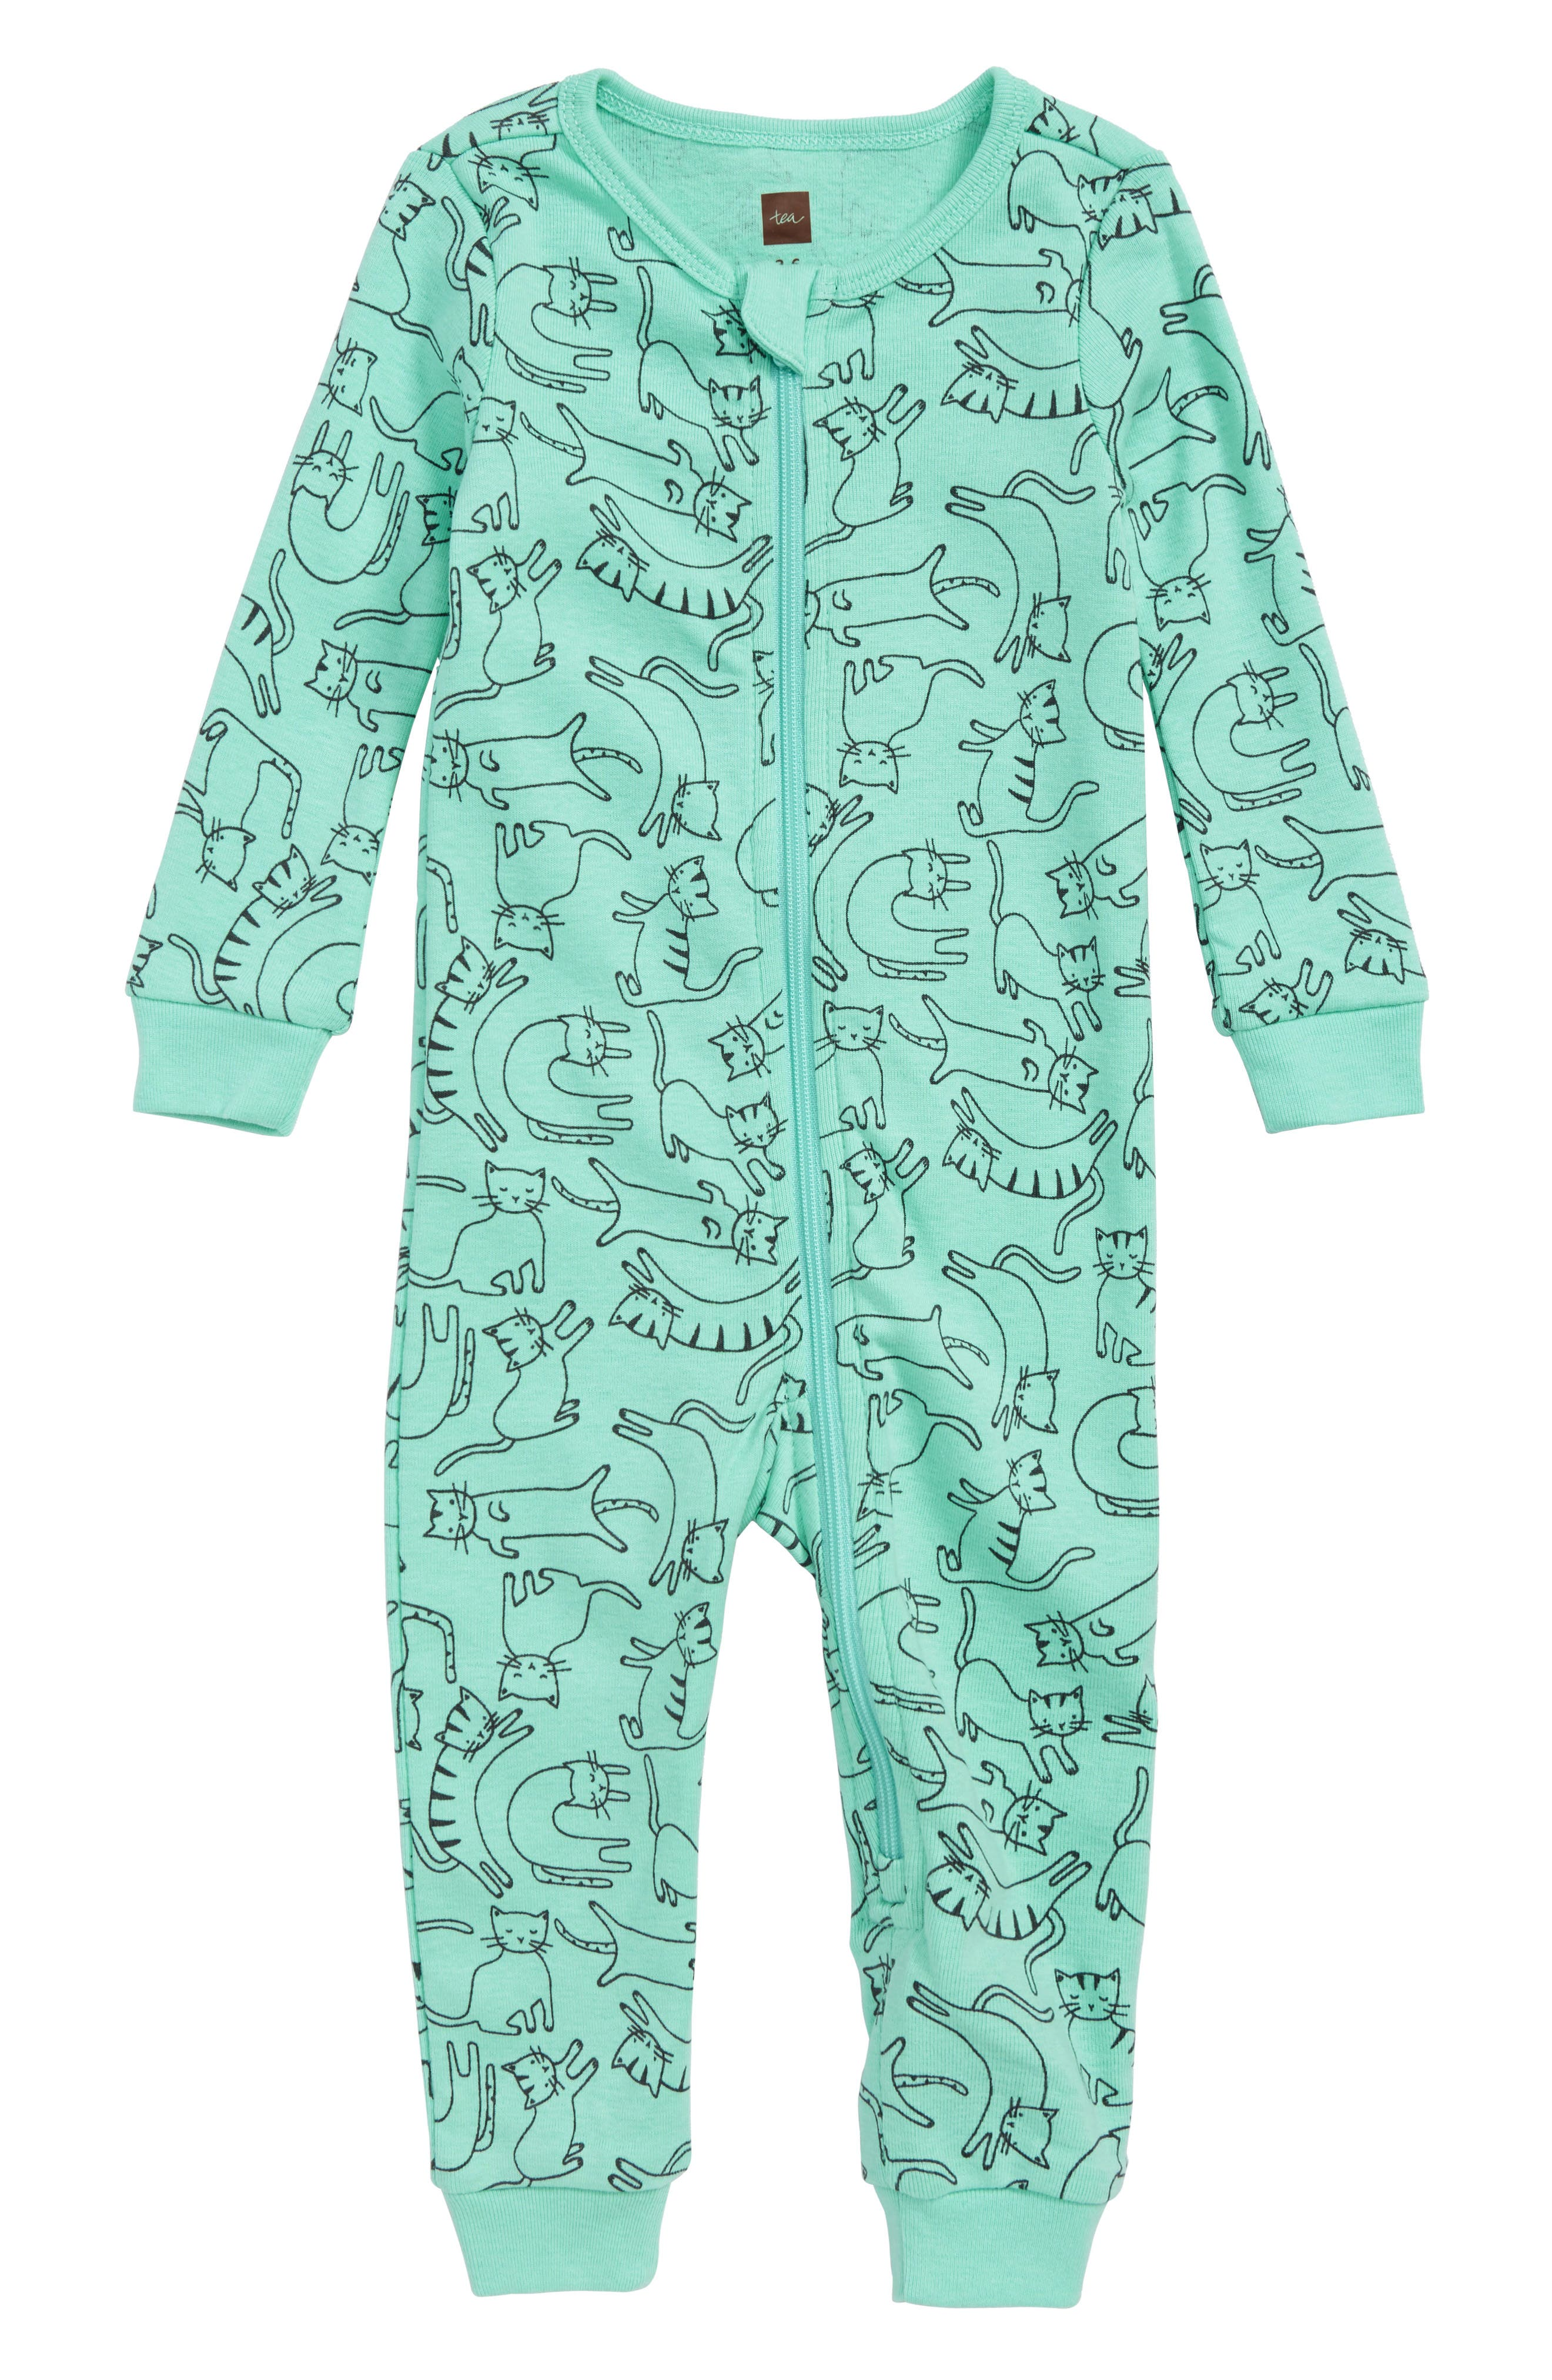 Printed Fitted One-Piece Pajamas,                         Main,                         color, 374